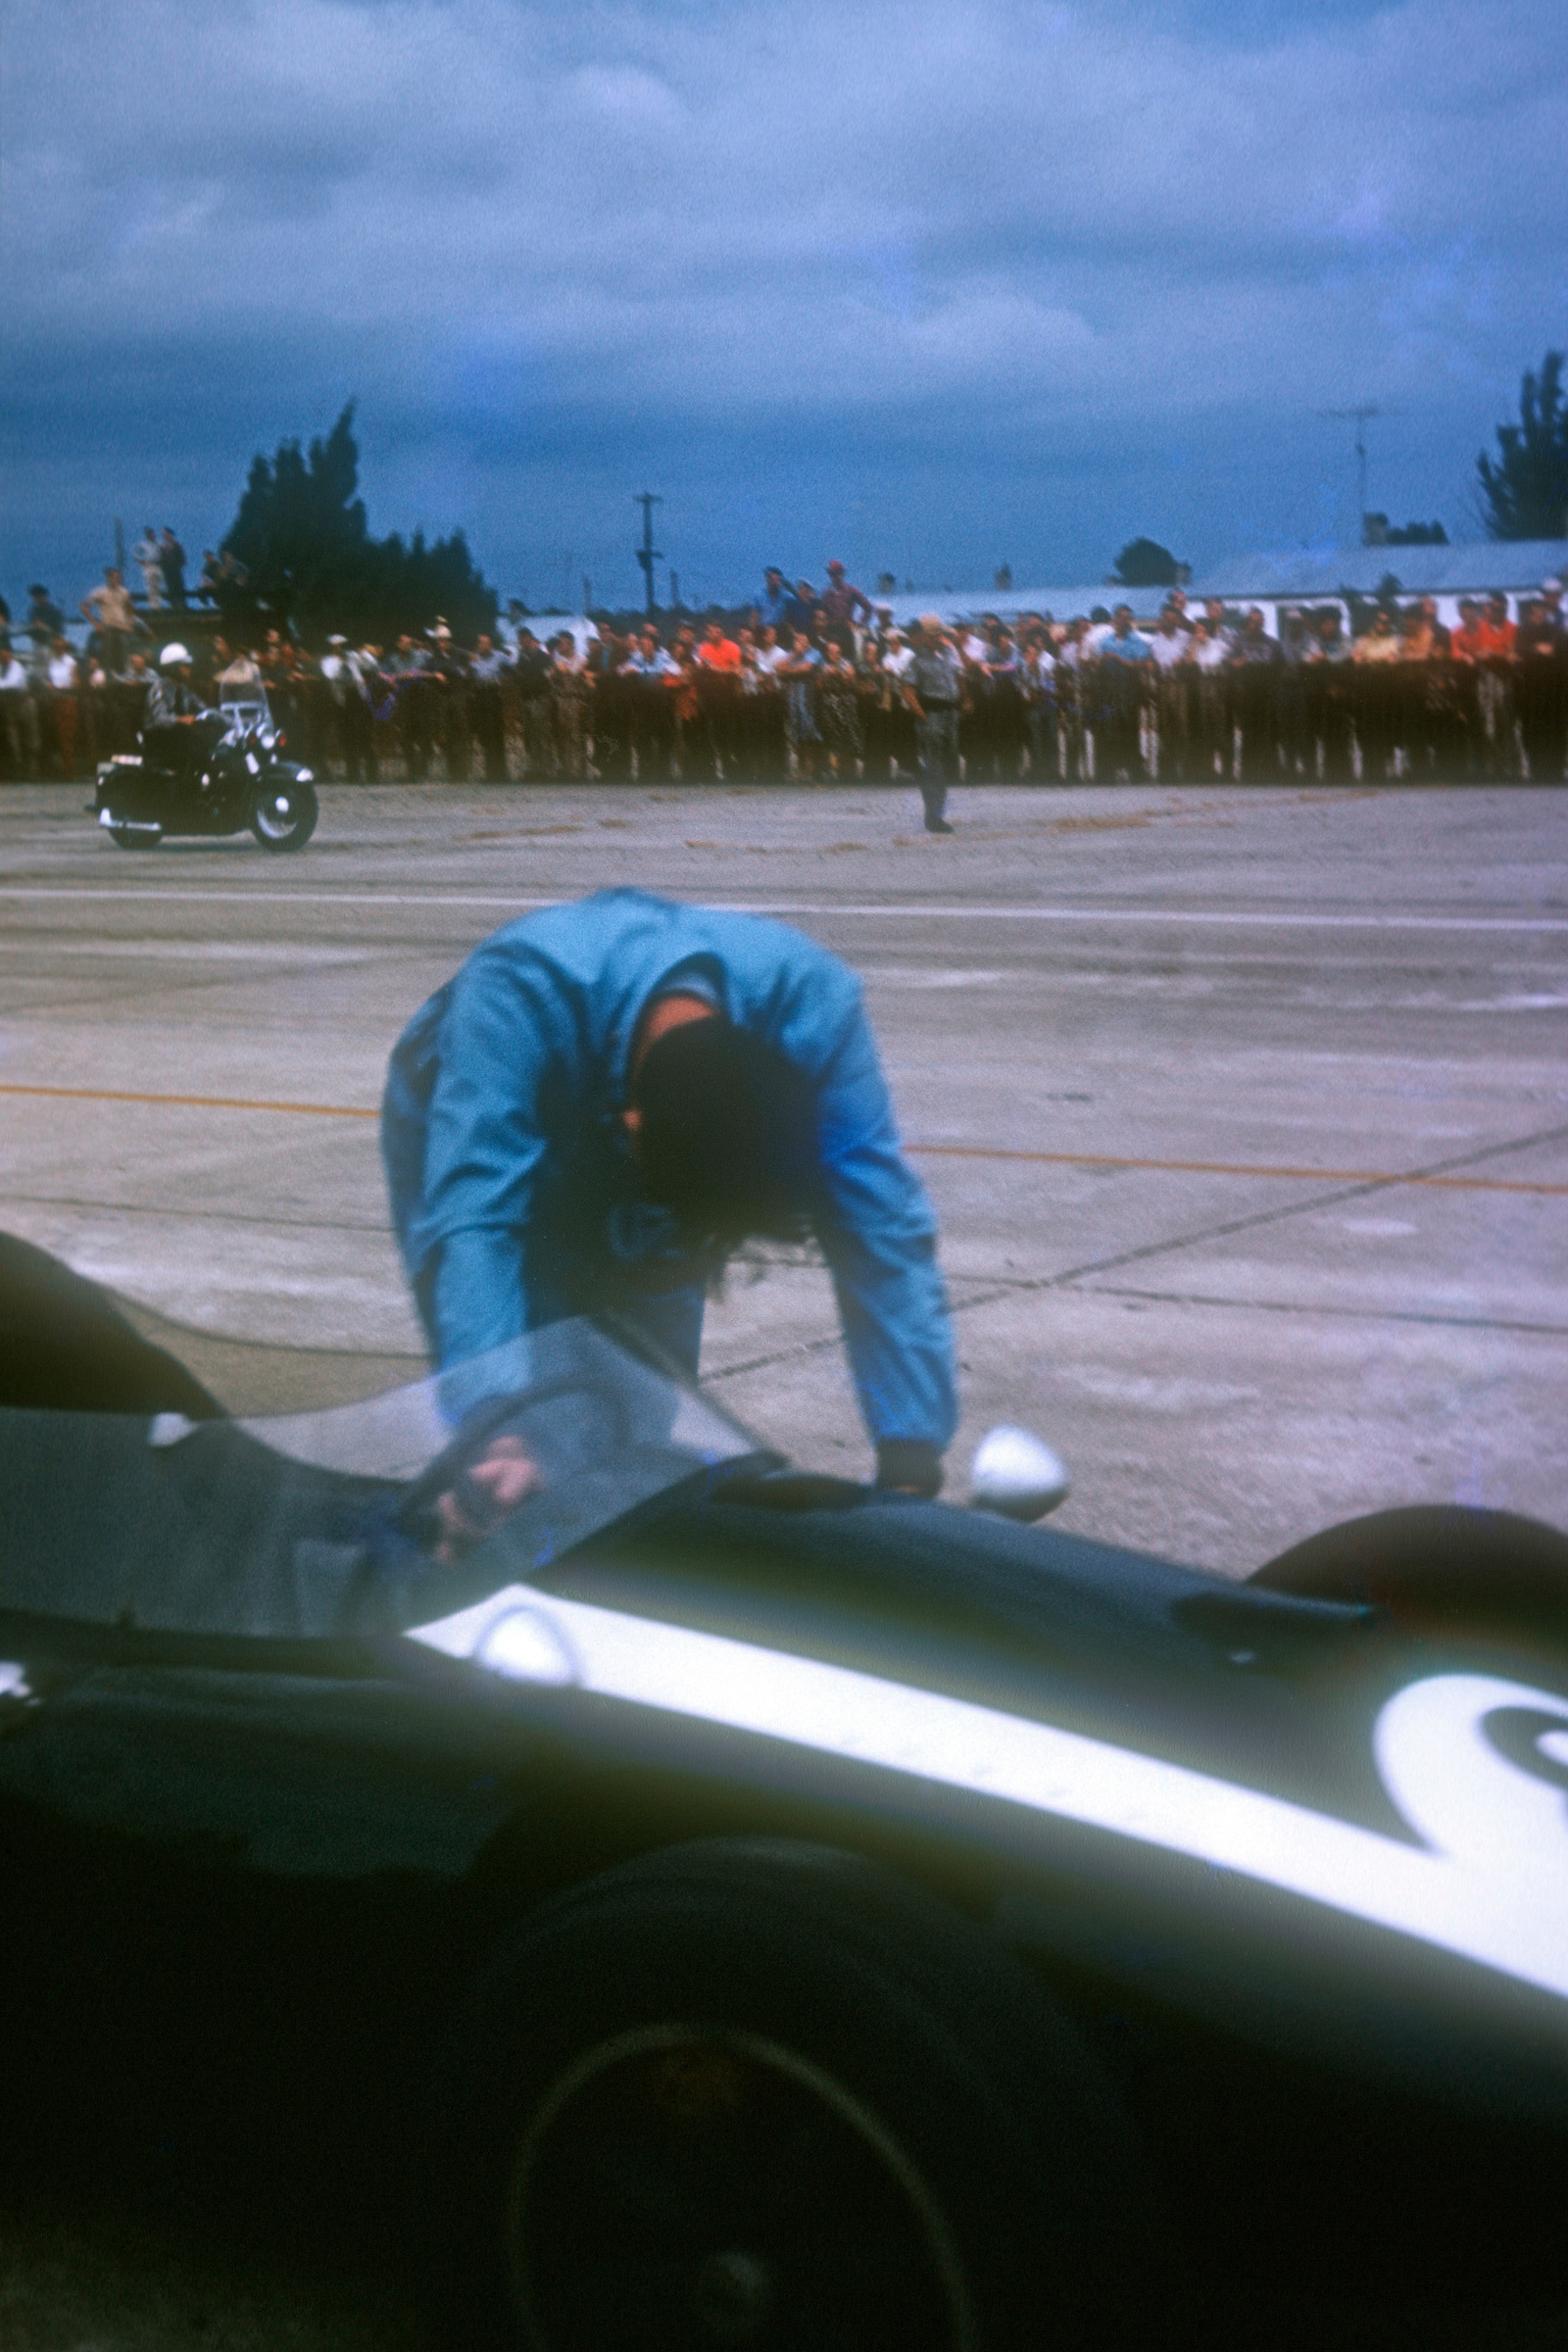 Jack-Brabham-pushing-his-car-over-the-line-in-the-1959-United-States-Granbd-Prix-at-Sebring